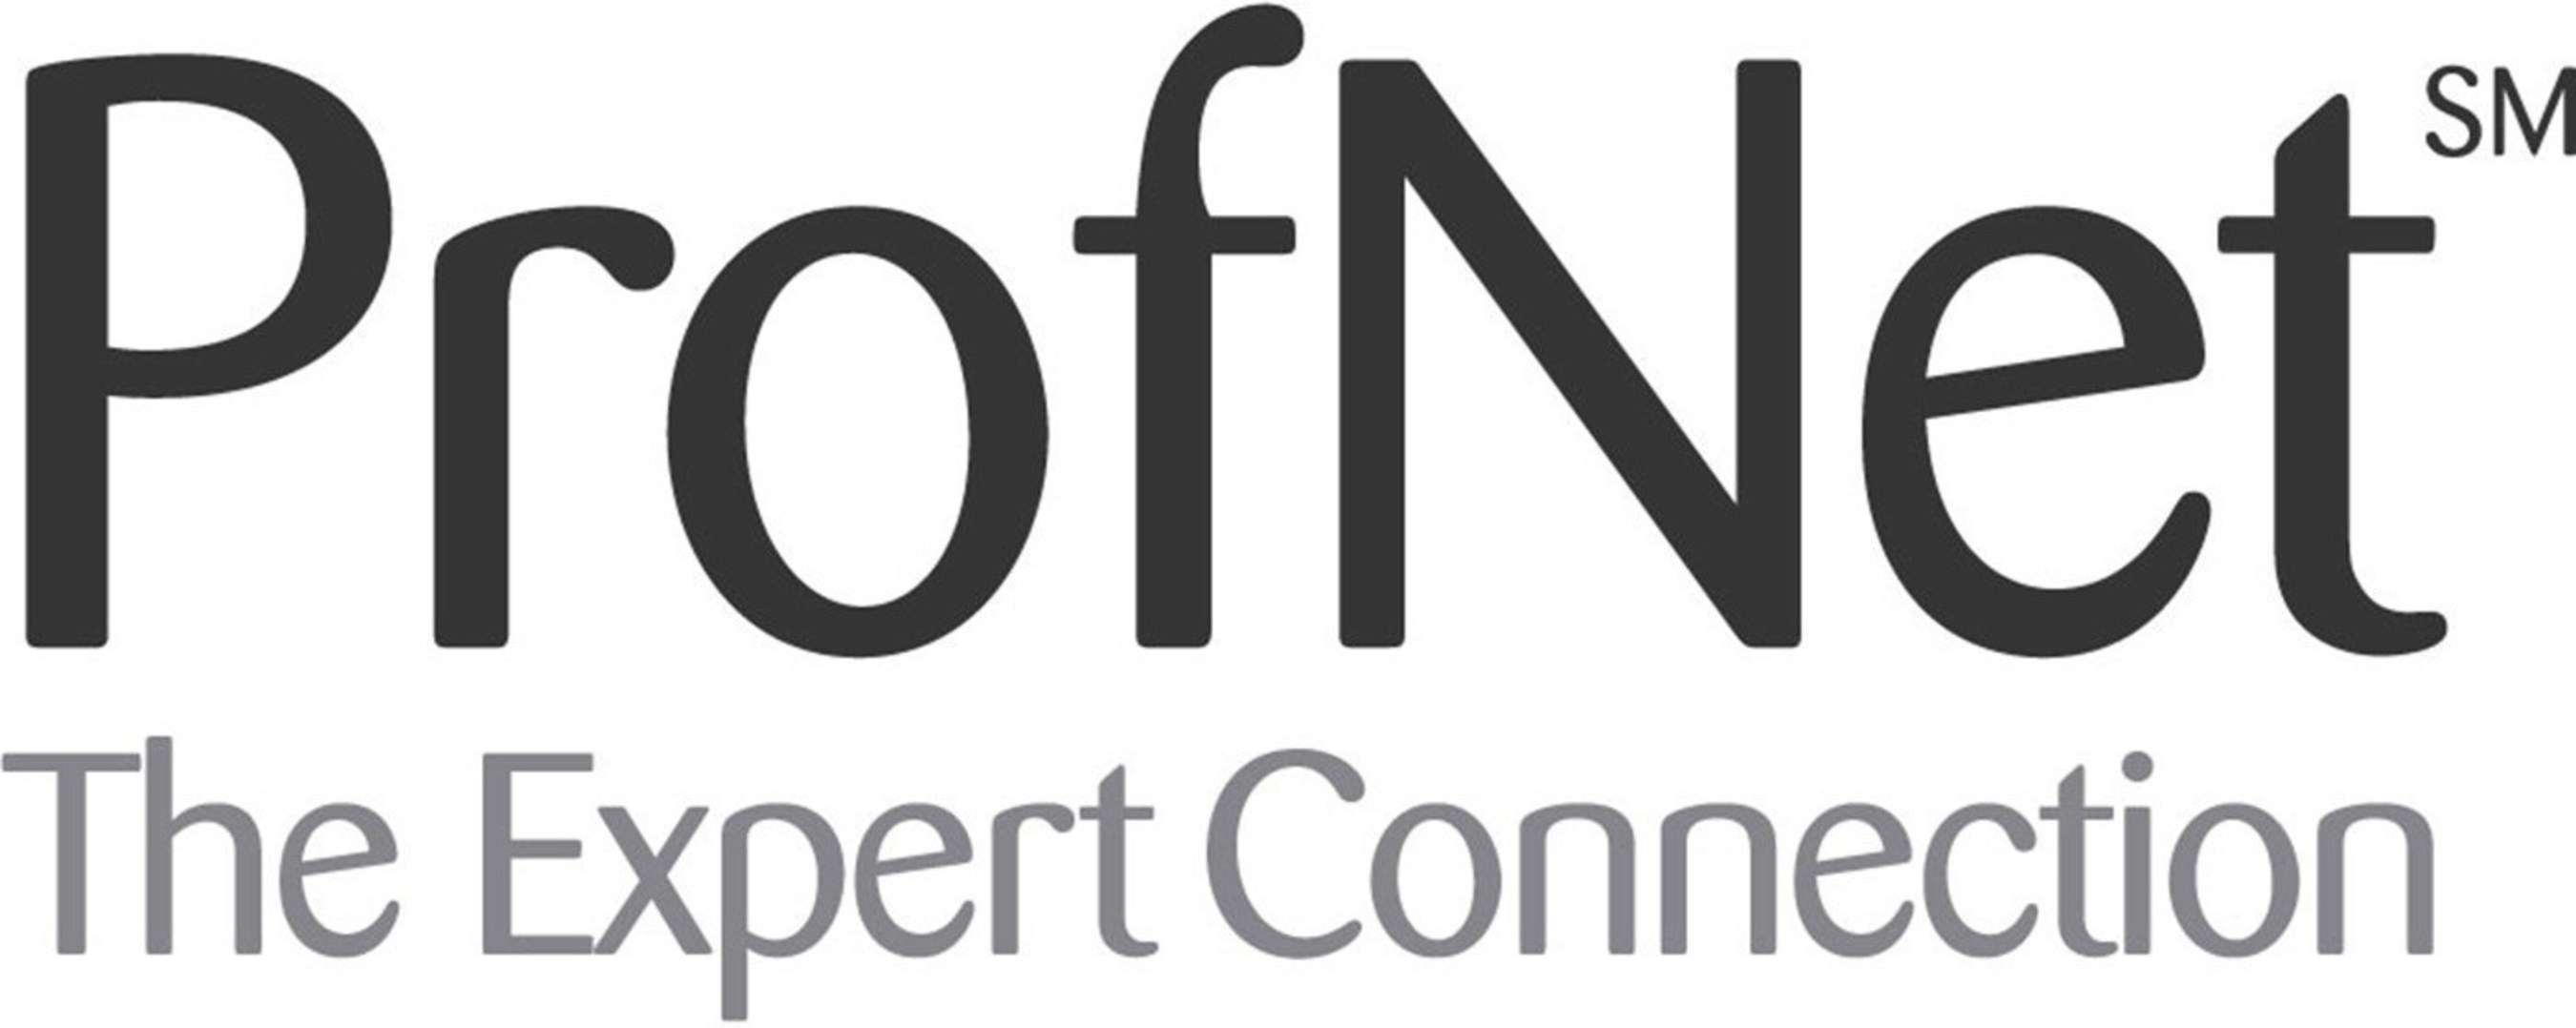 ProfNet Experts Available on Mobile Security, Workplace of the Future, More